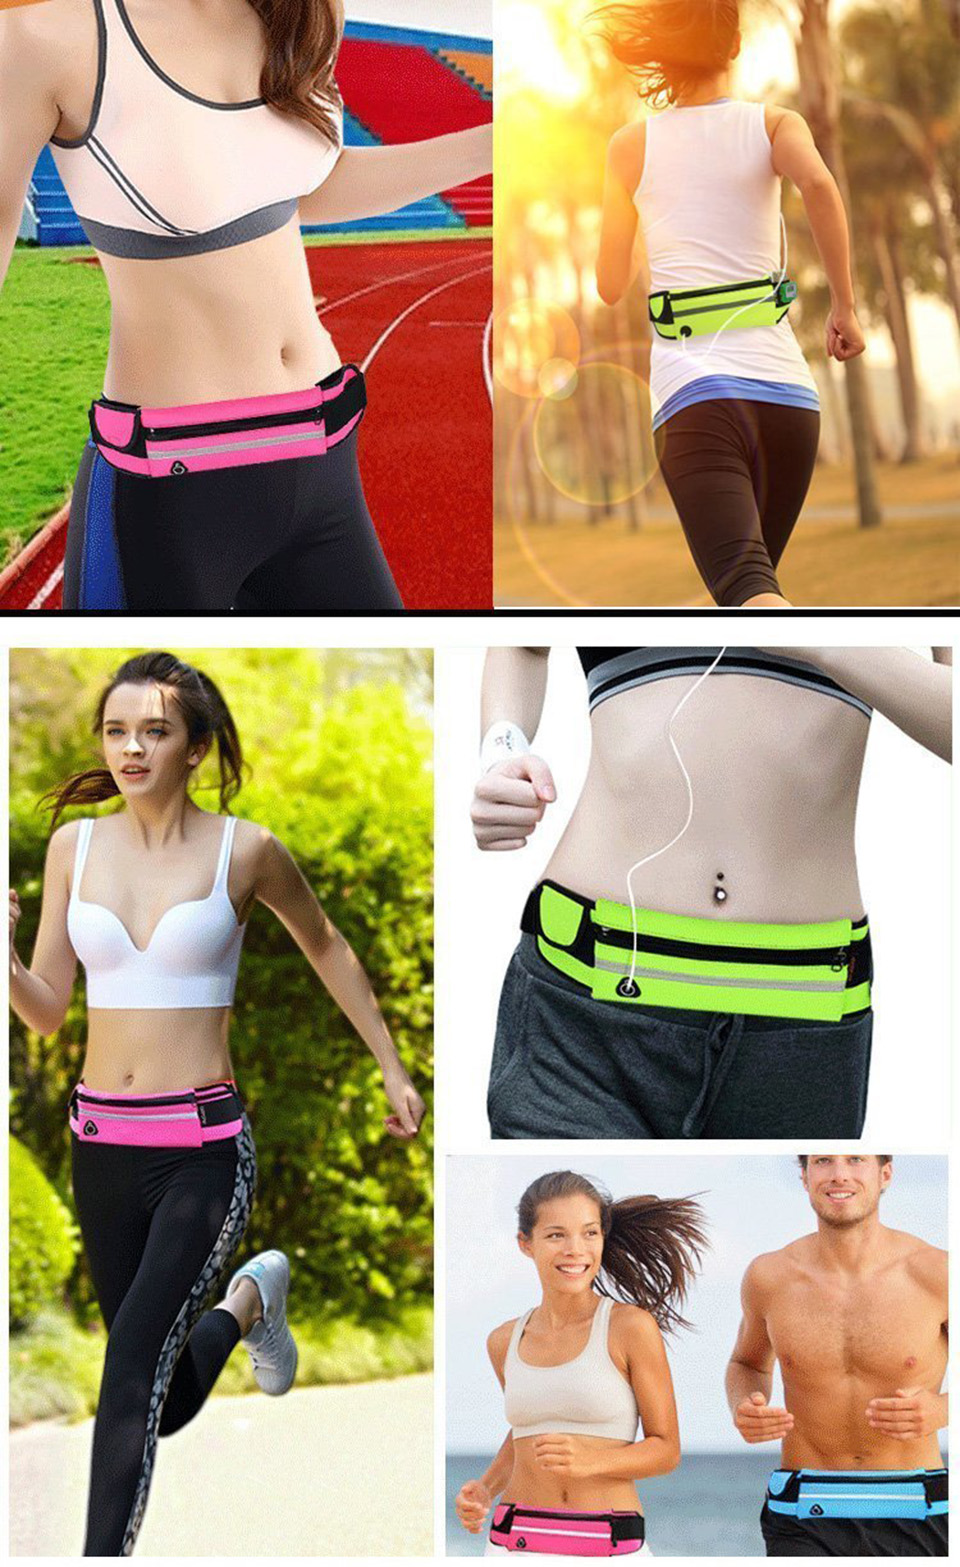 New Outdoor Running Waist Bag Waterproof Mobile Phone Holder Jogging Belt Belly Bag Women Gym Fitness Bag Lady Sport Accessories 22